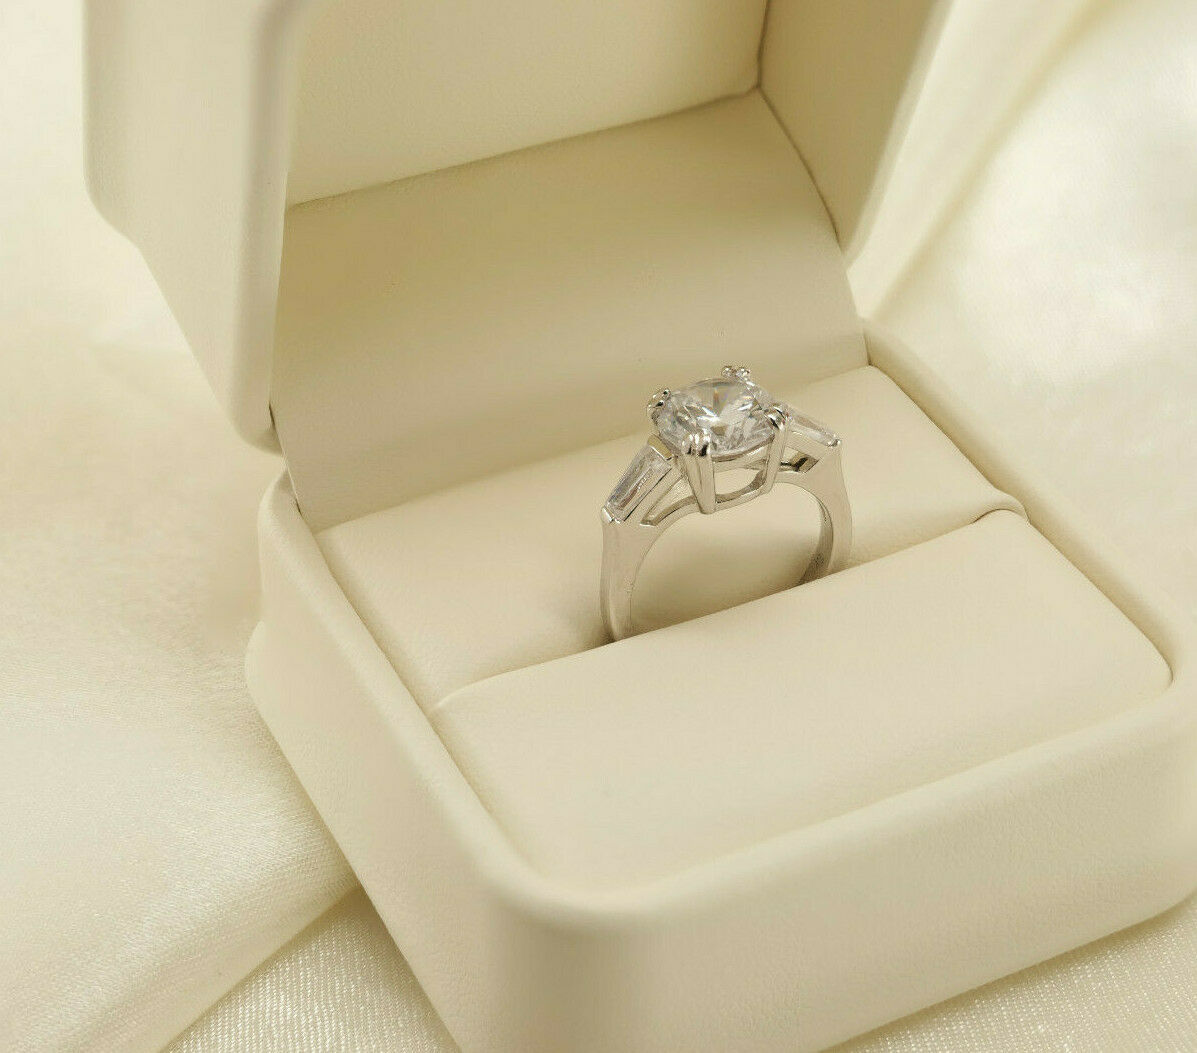 2 Ct Round Cut Diamond Solitaire Engagement Ring 14k White Gold Finish Size 4-10